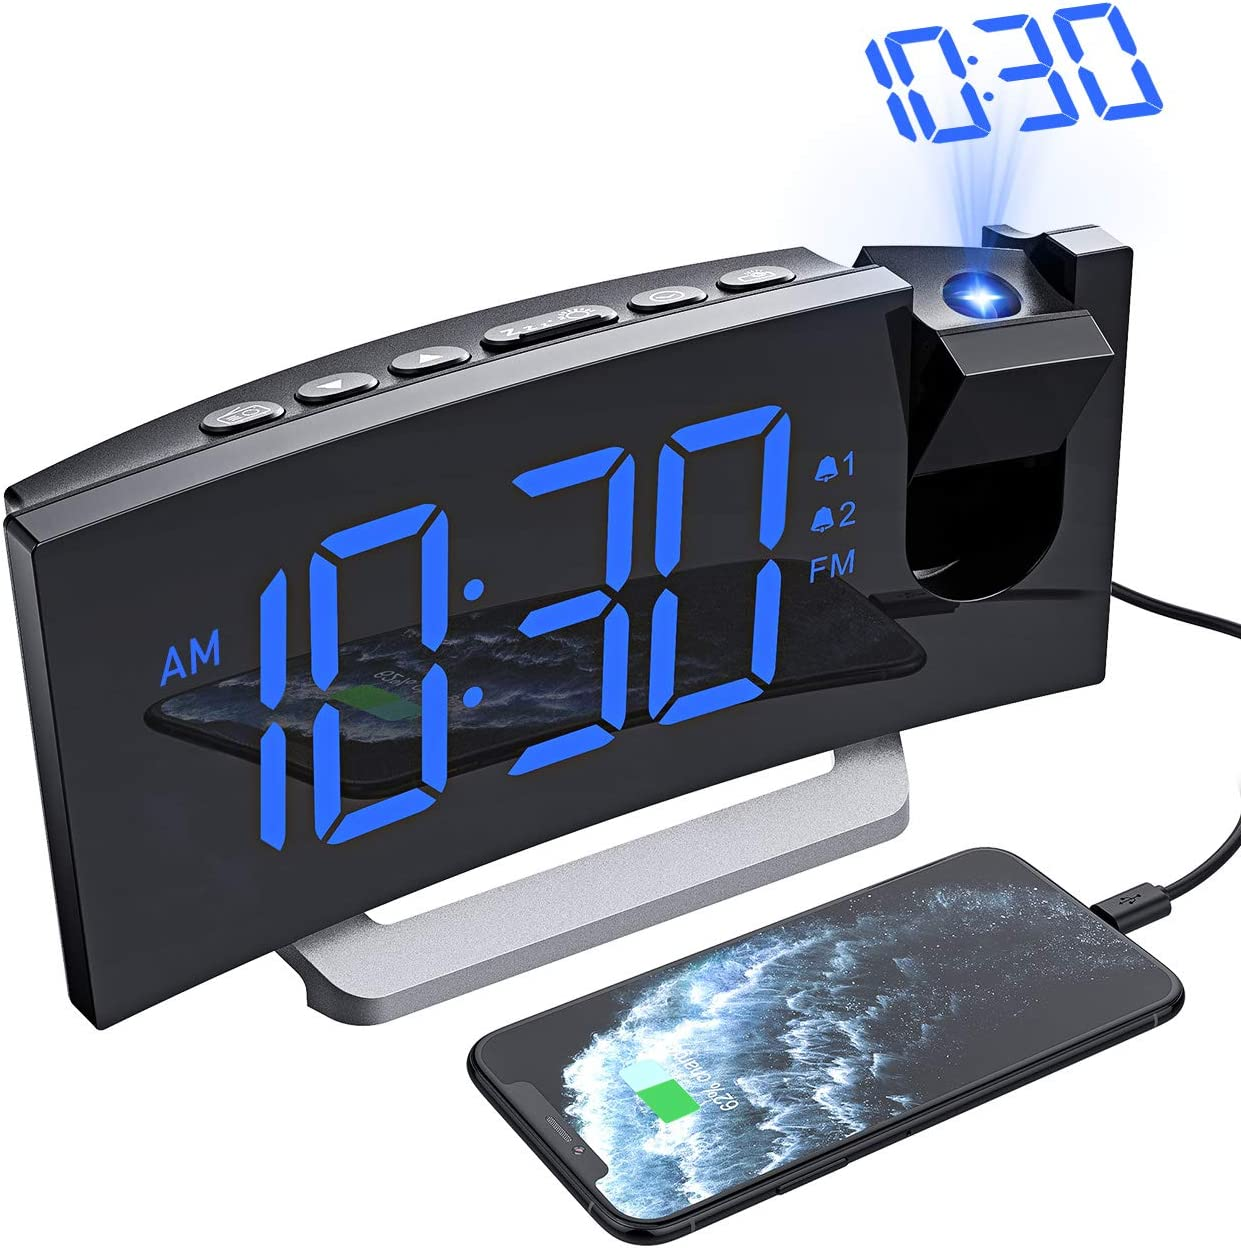 Mpow Projection Alarm Clock, Radio Digital Clock with USB Charger, 0-100% Full Range Brightness Dimmer, Dual Alarm Clock with 5 Sounds for Heavy Sleeper, Snooze